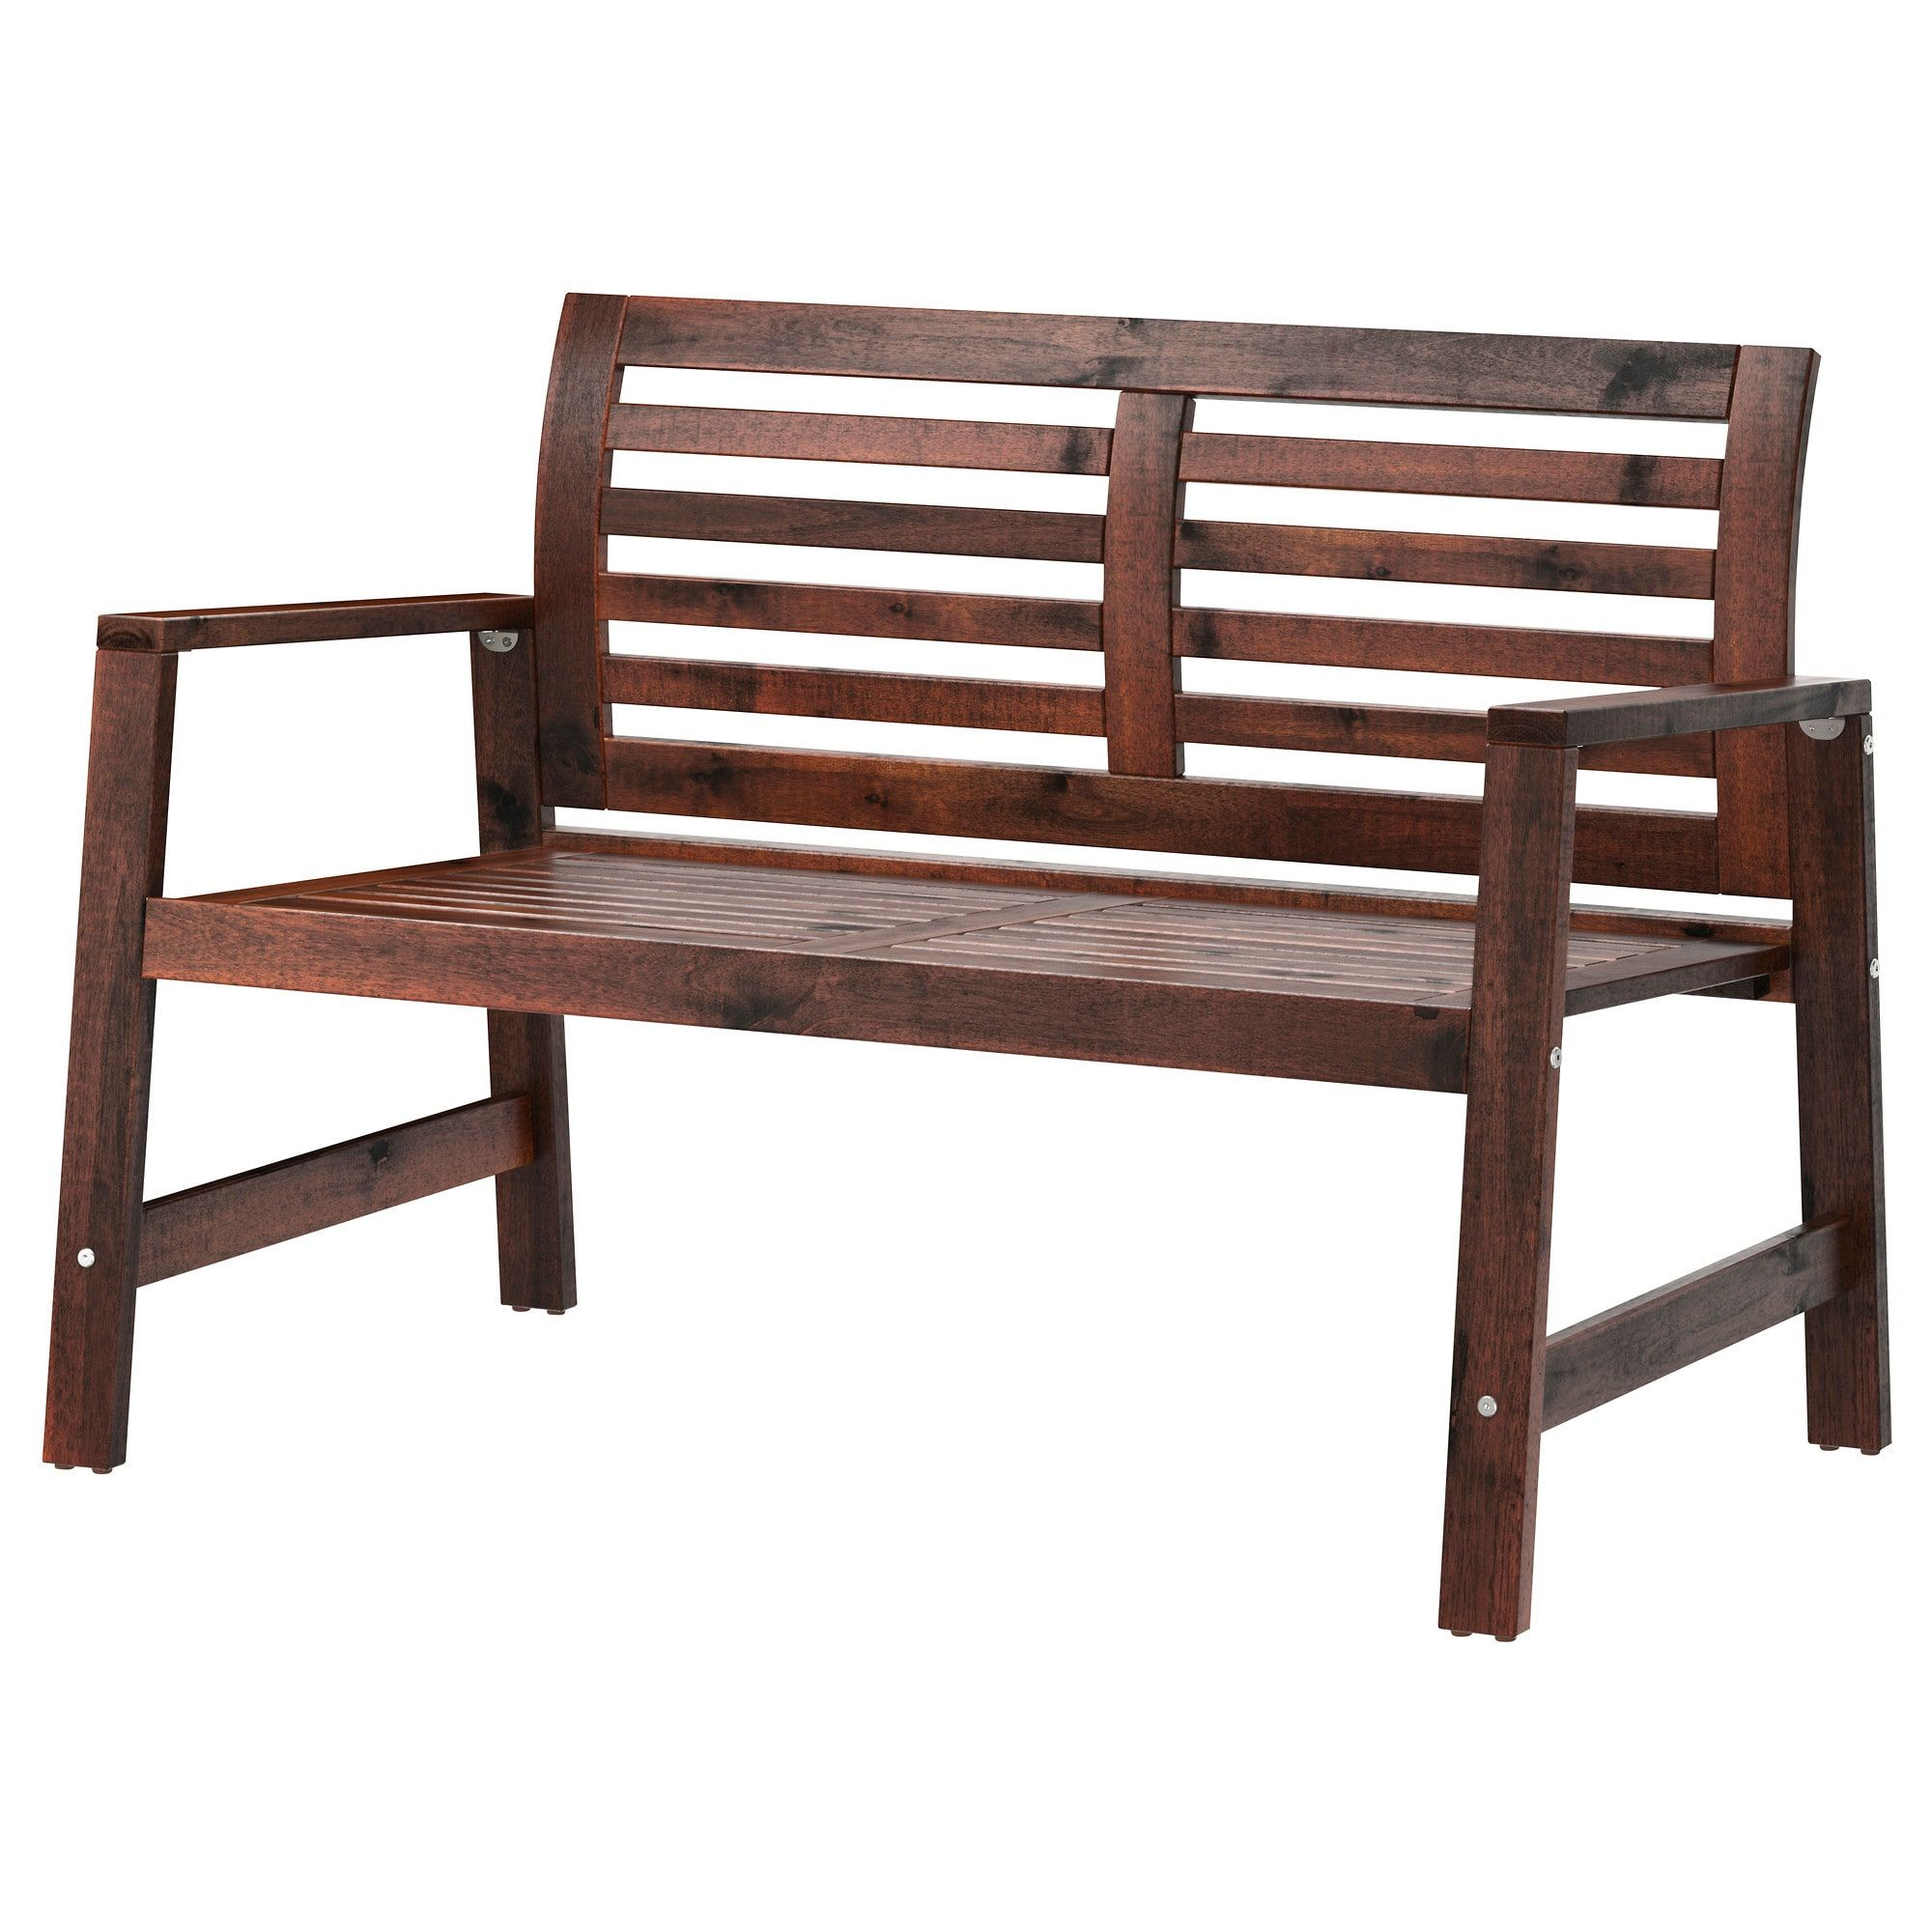 Äpplarö Bench With Backrest, Outdoor - Brown Stained Brown ... pour Banc De Jardin Ikea